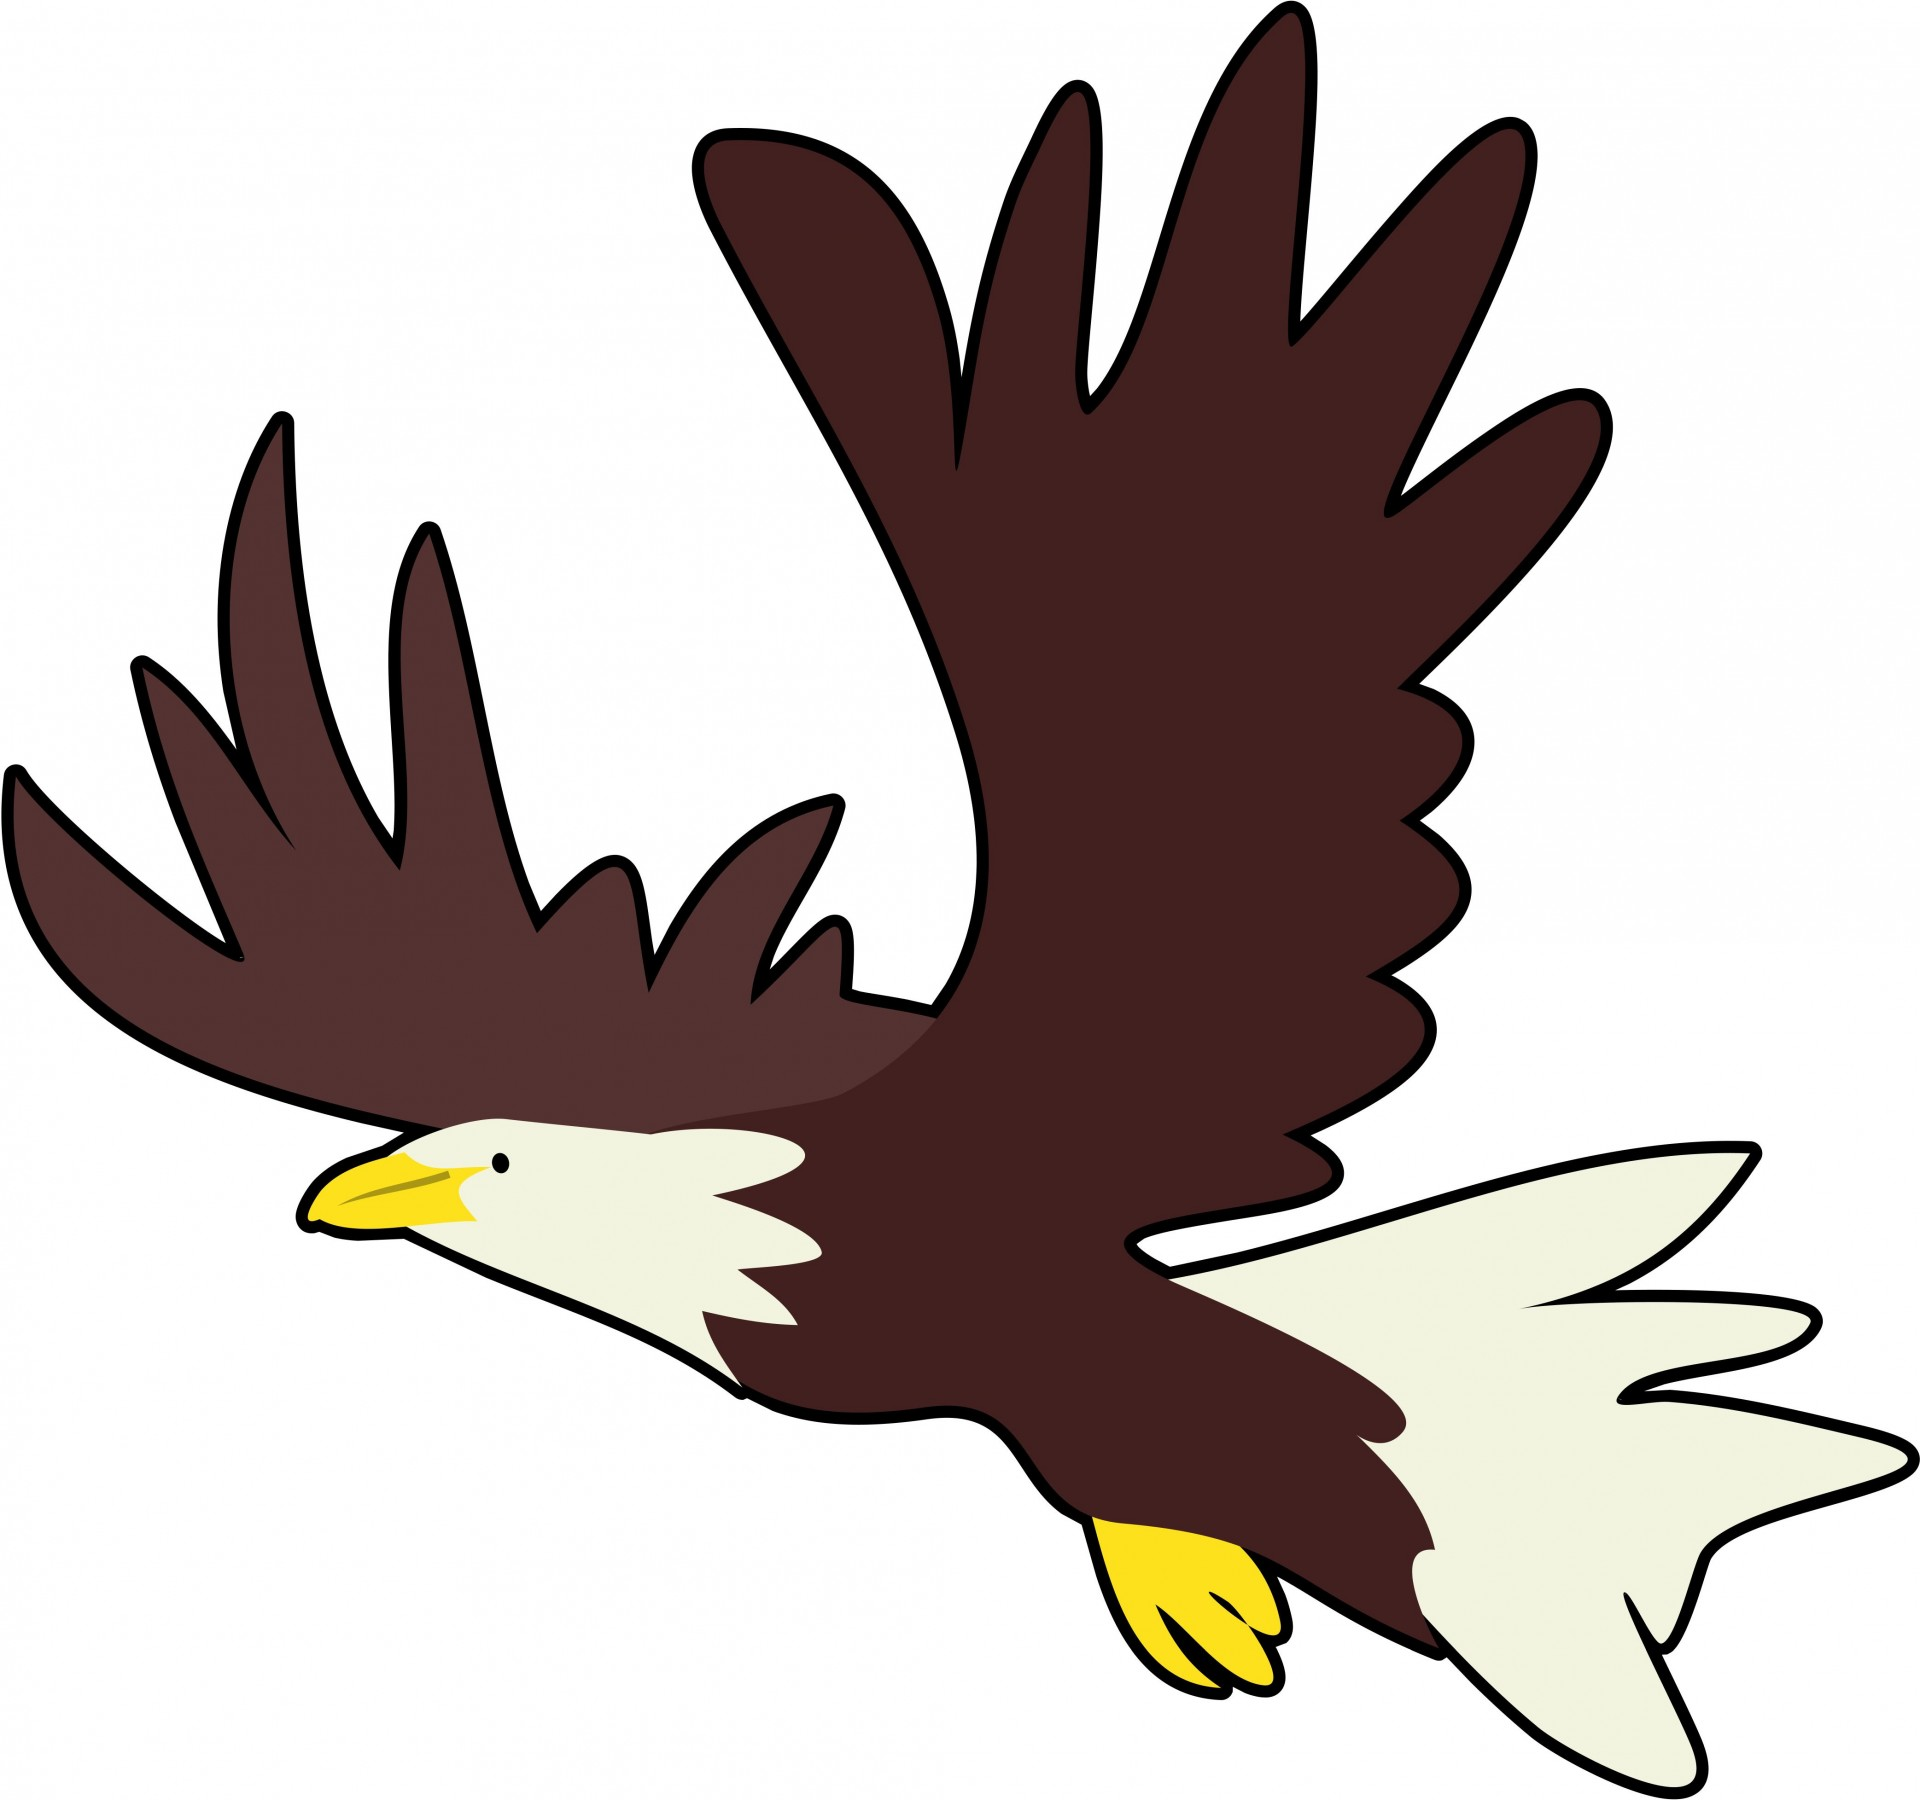 hight resolution of 1920x1800 bald eagle clipart harley davidson